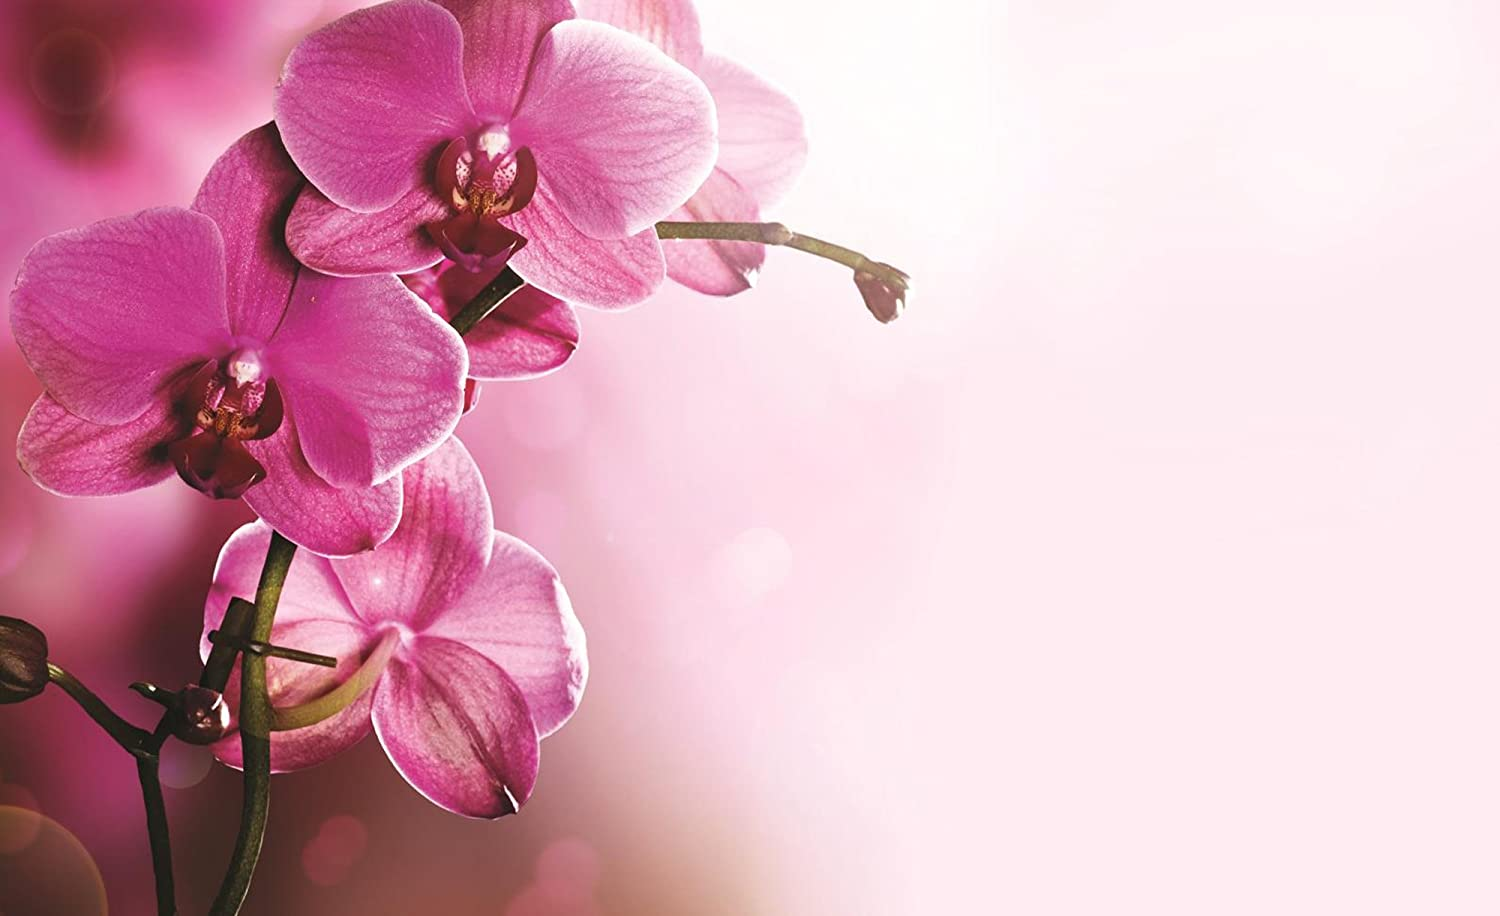 Soft Pink Orchid Flowers Wallpaper Mural Amazoncom